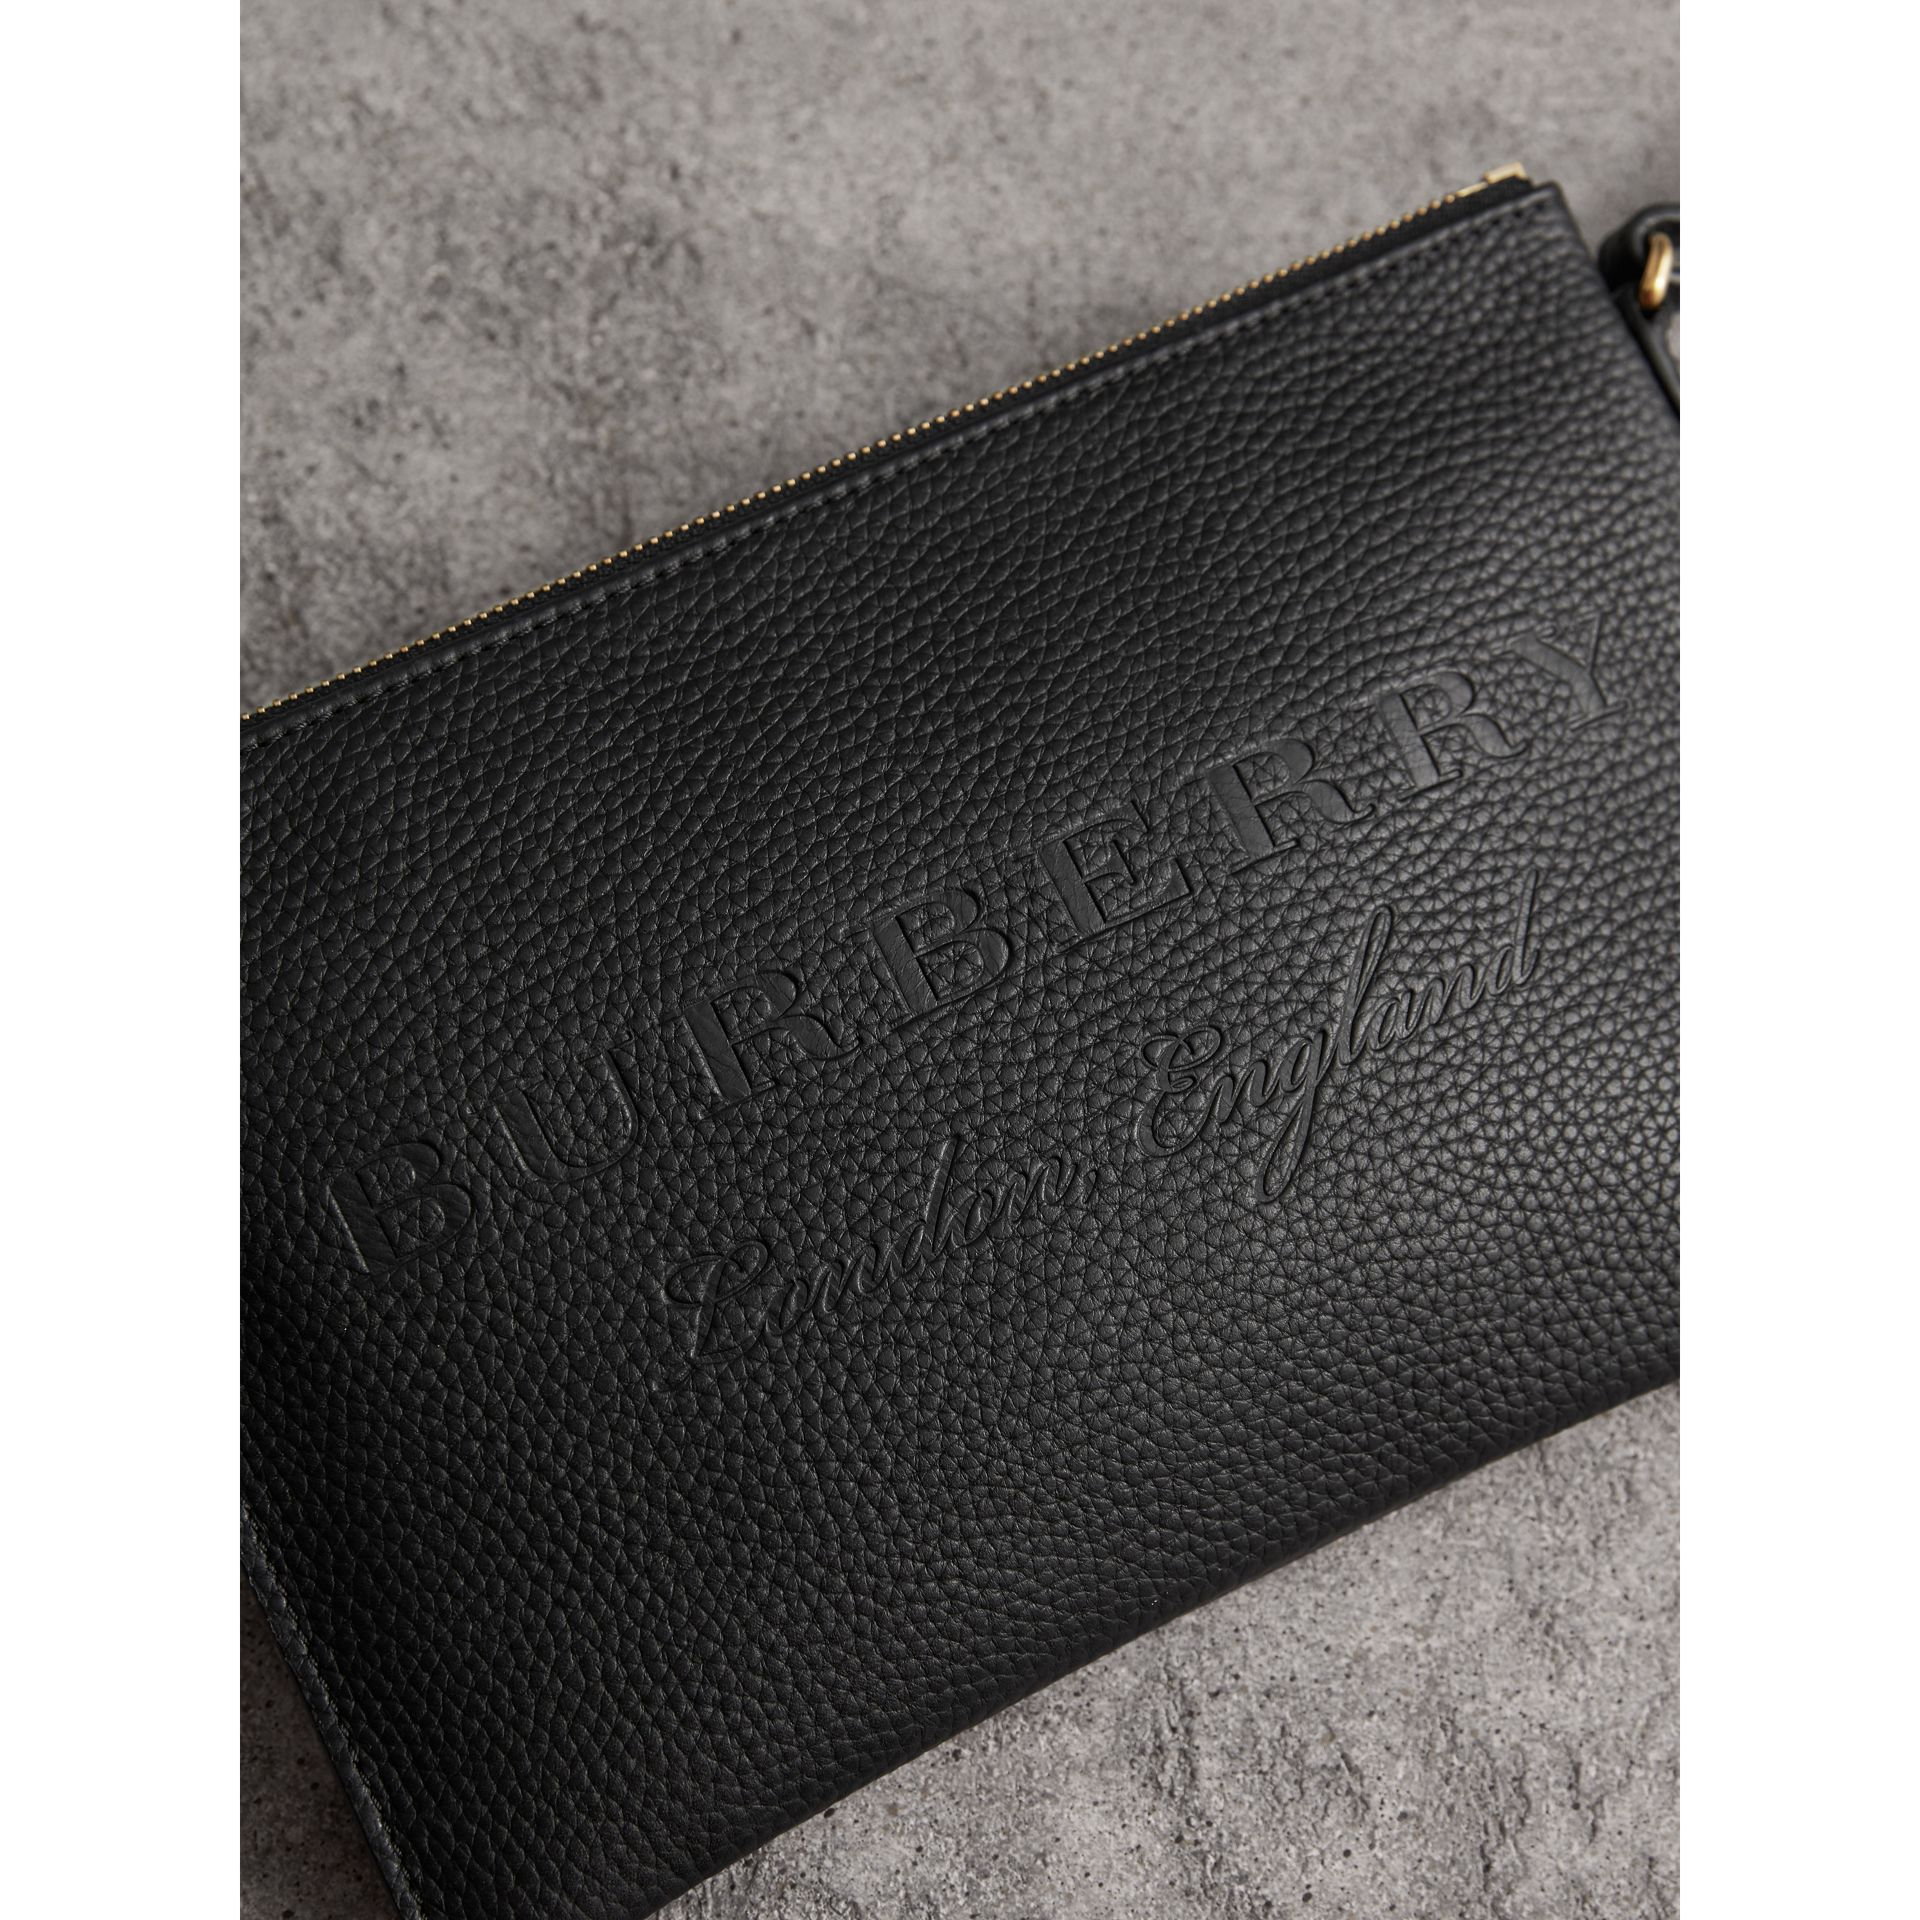 Embossed Leather Clutch Bag in Black - Women | Burberry Hong Kong - gallery image 1